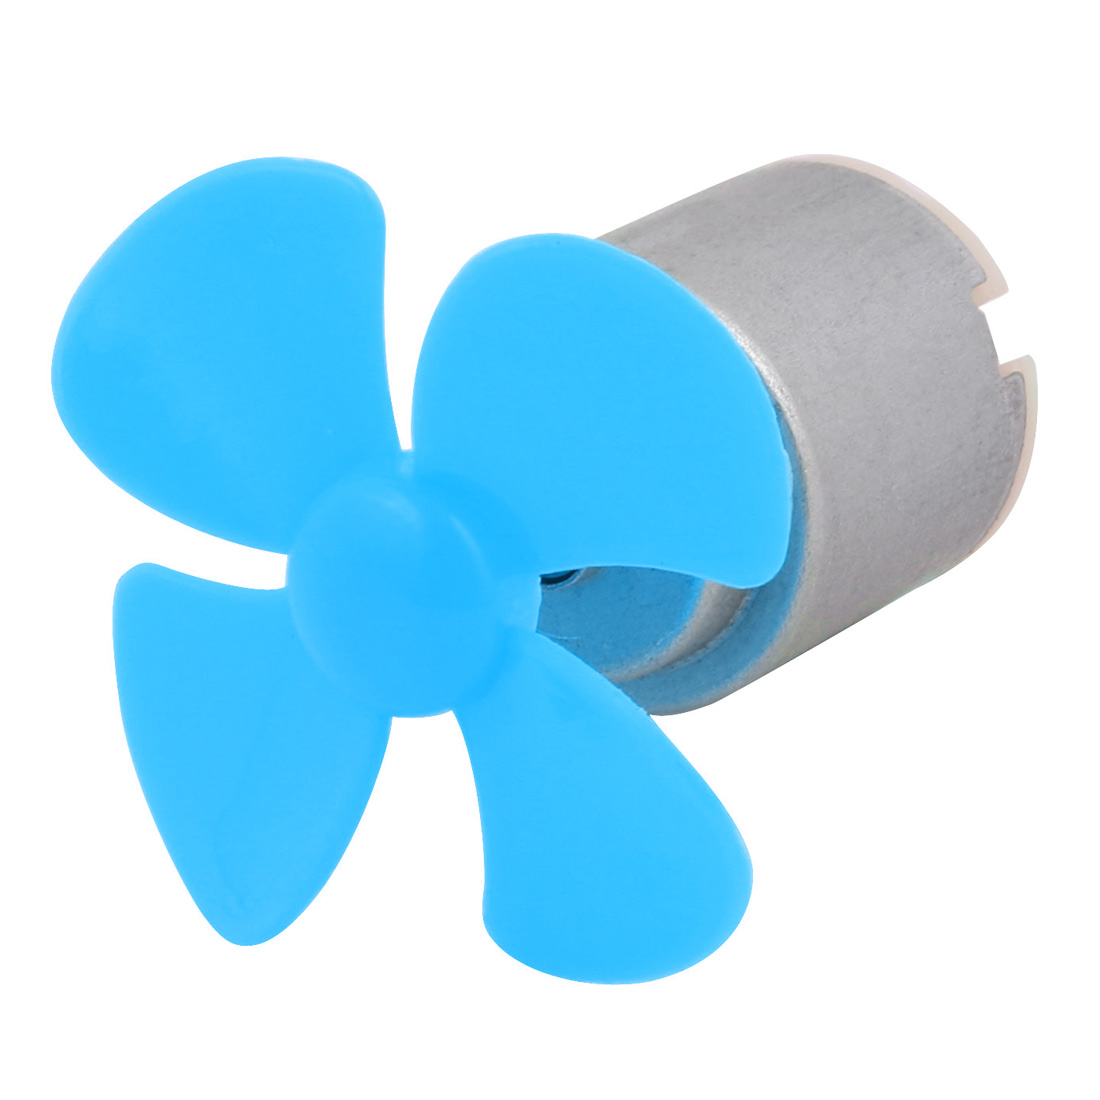 DC 3V 0.13A 11000RPM Strong Force Motor 4 Vanes 40mm Blue Propeller for RC Aircraft